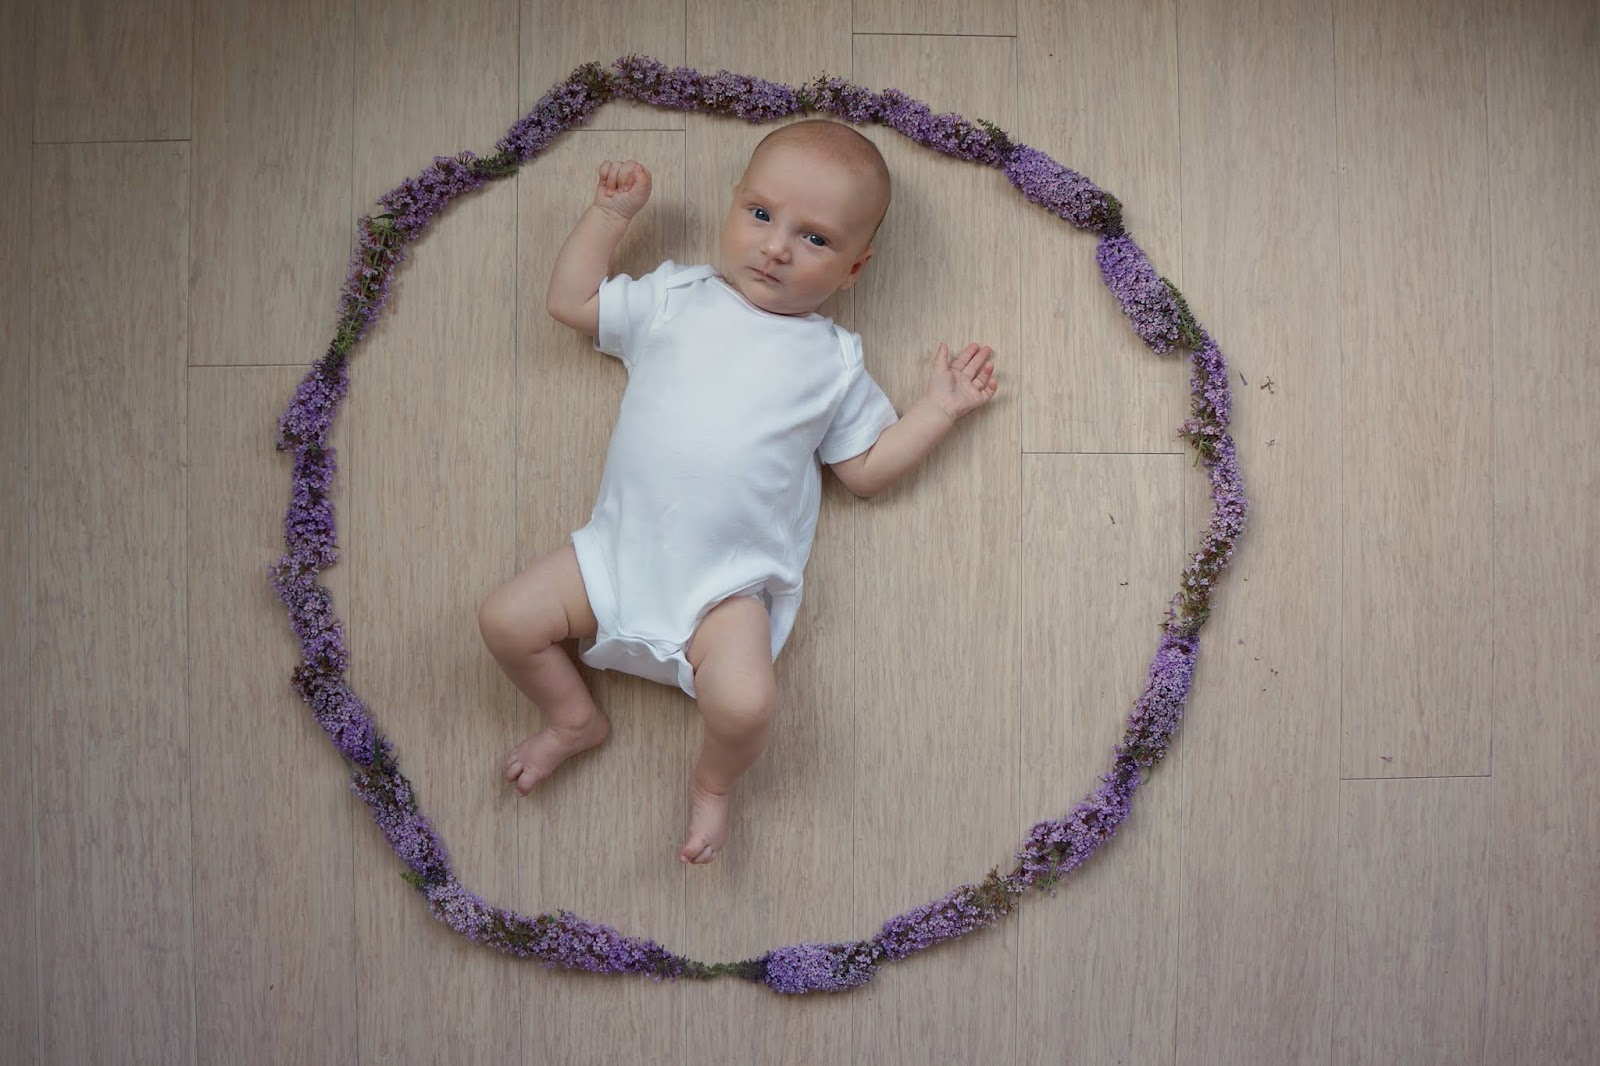 baby in a circle of flowers